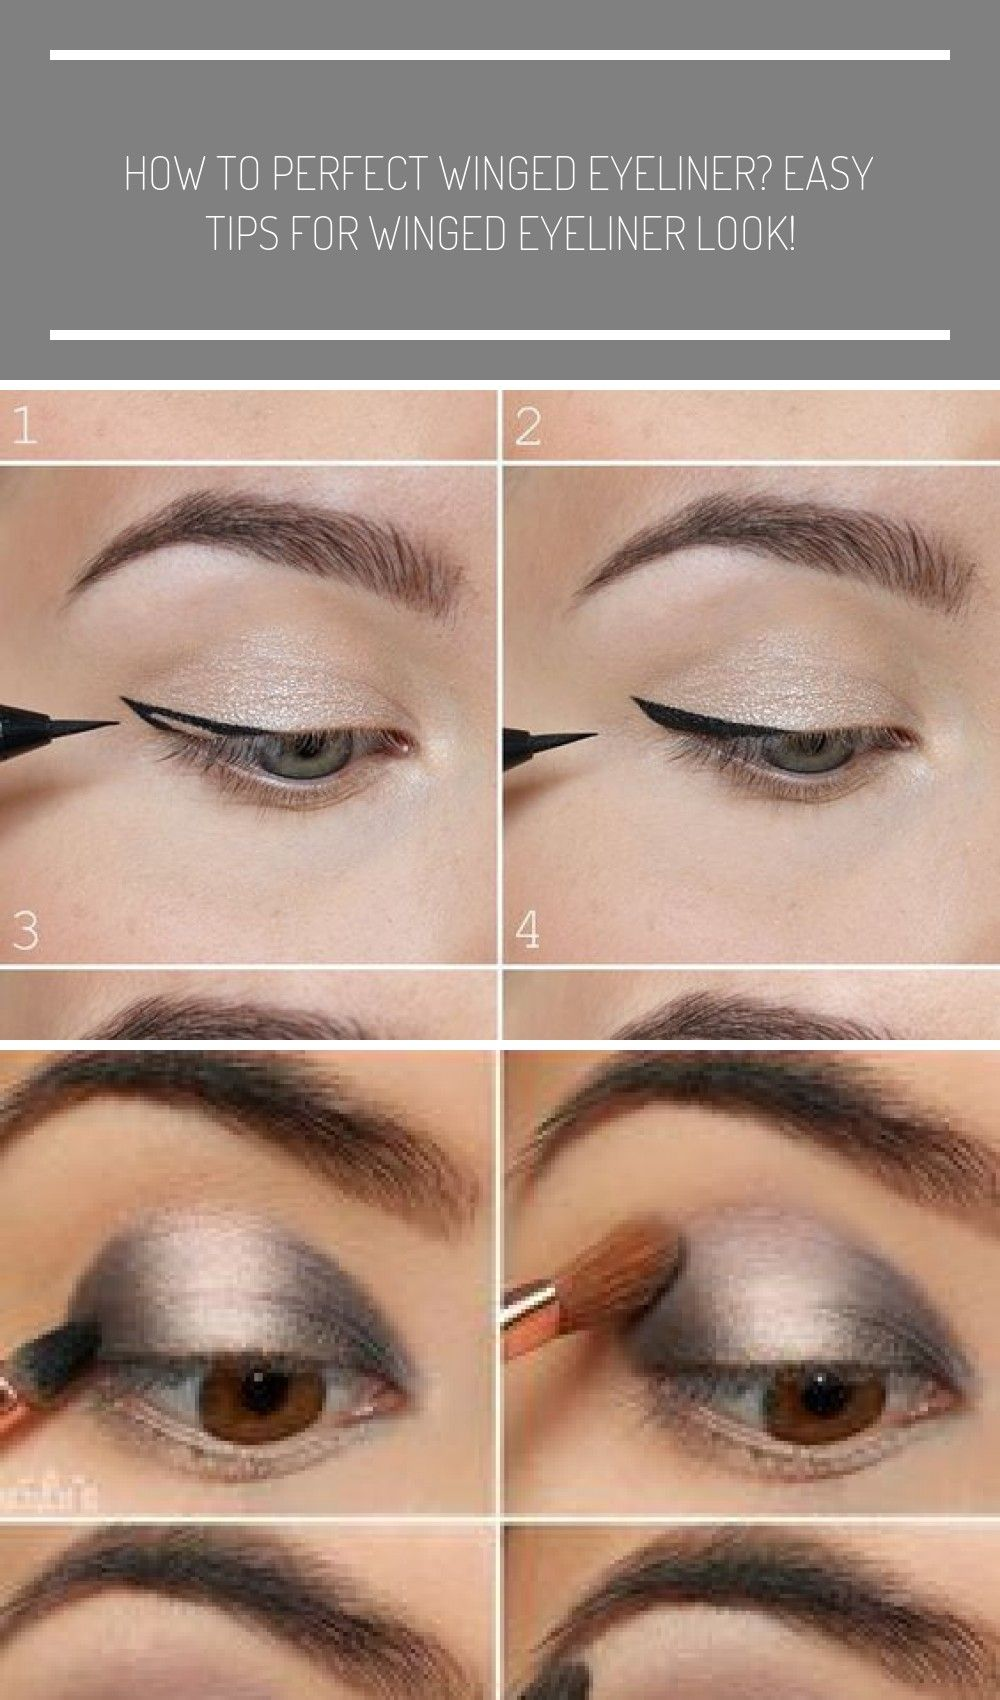 the easiest way to do winged eyeliner makeup tips tutorials How to perfect winged eyeliner? Easy ti